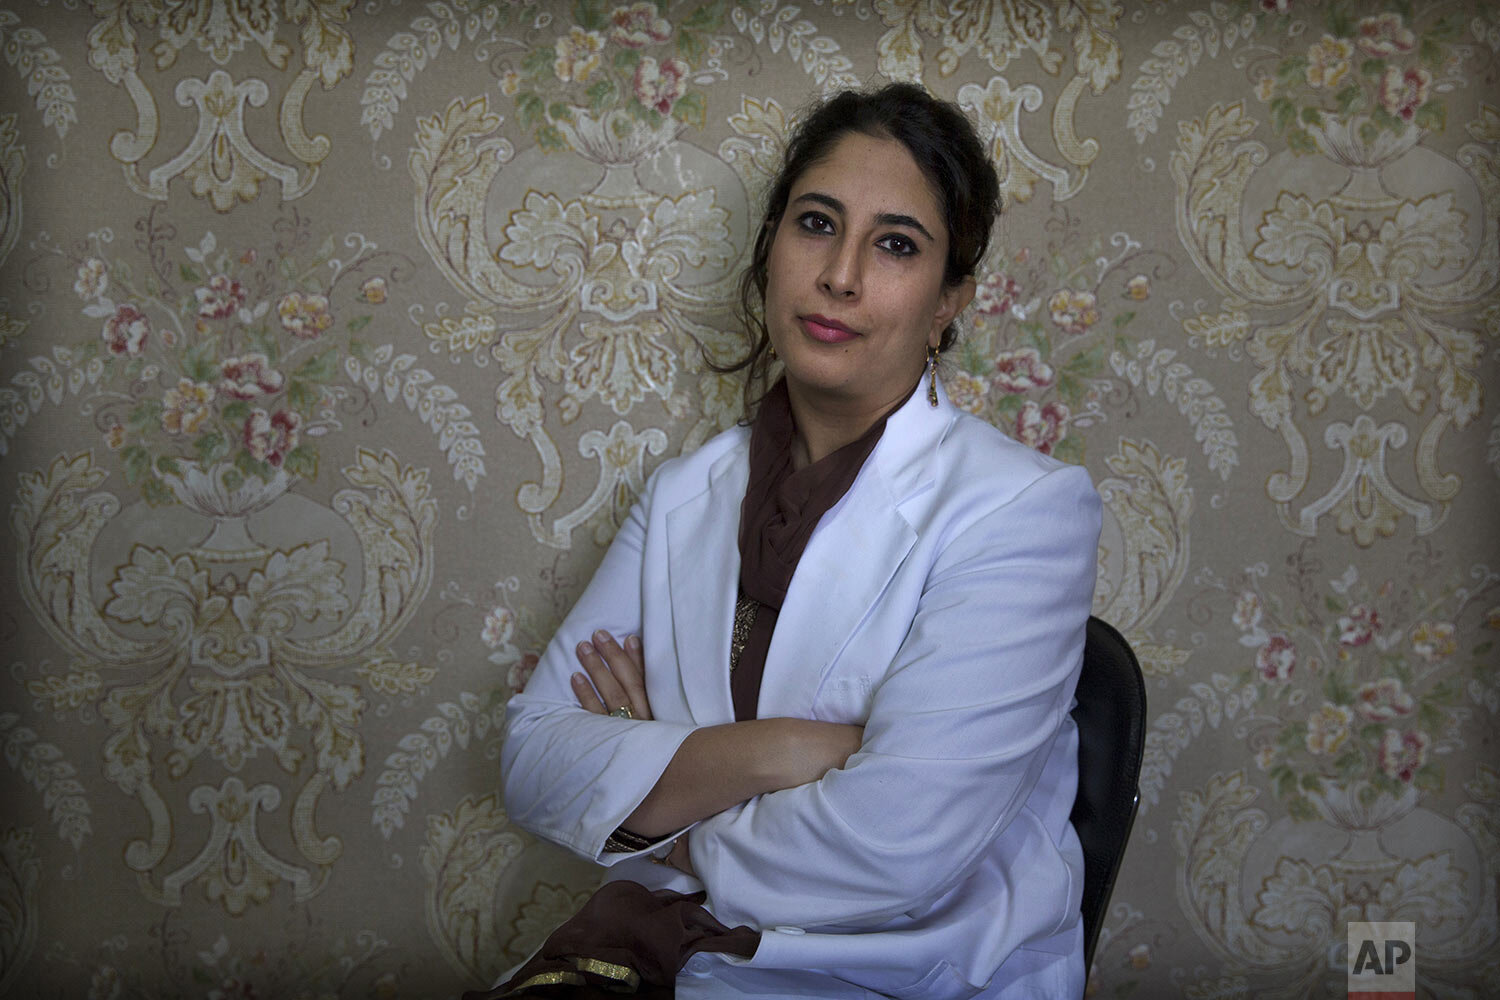 Kashmiri doctor Sabahat Rasool sits for a photograph inside her clinic in Srinagar, Indian controlled Kashmir, Friday, Sept. 27, 2019. (AP Photo/Dar Yasin)